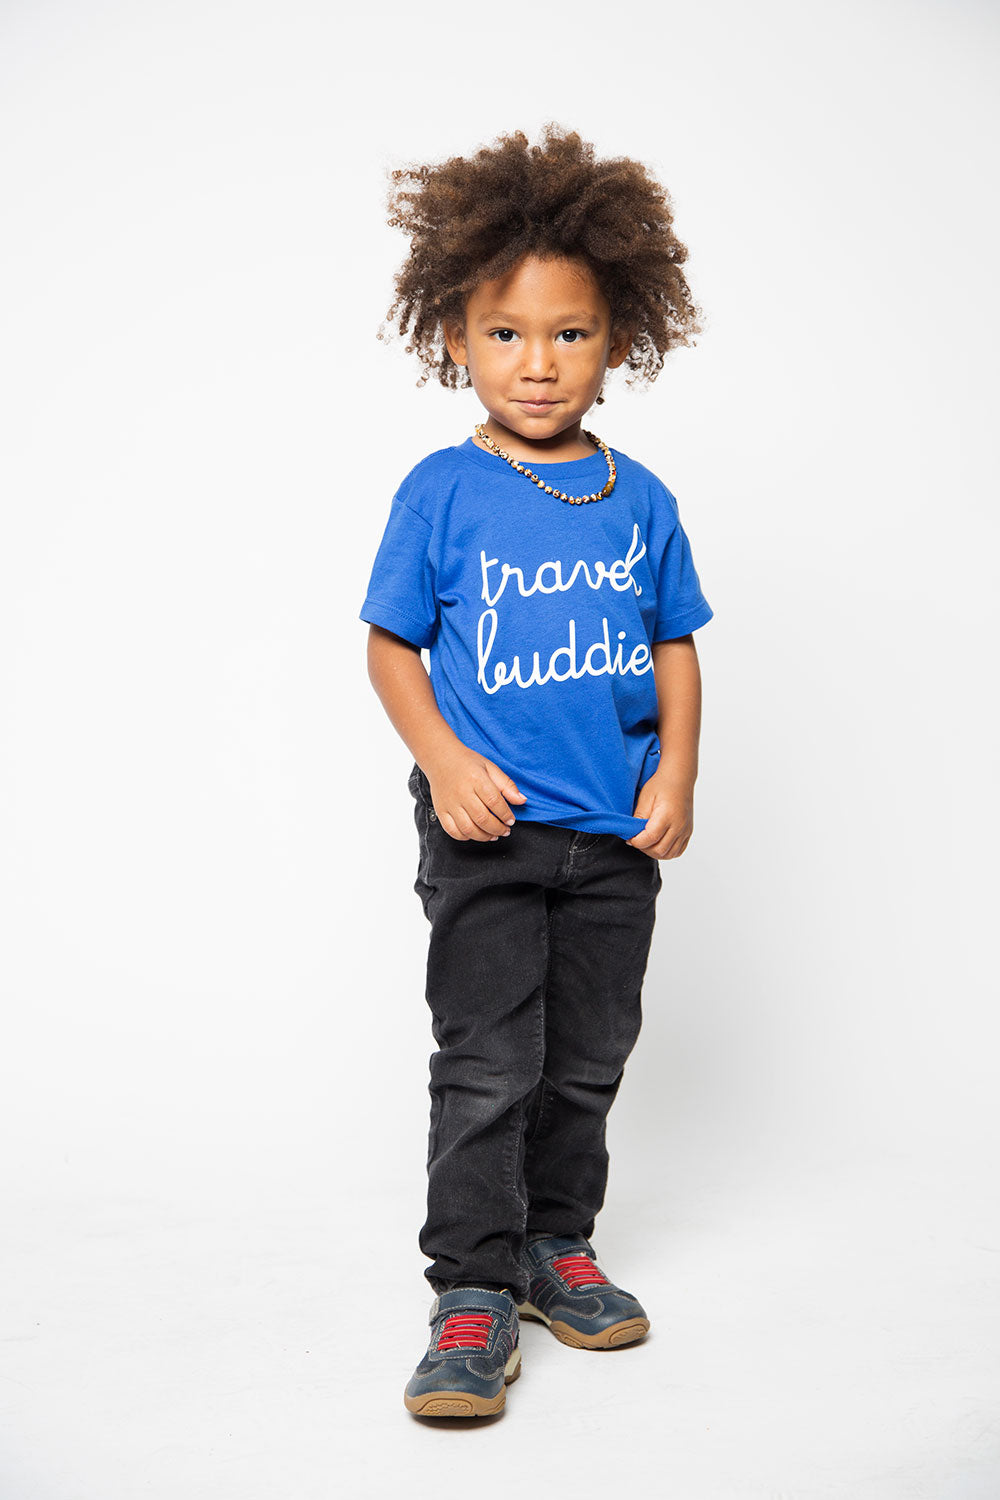 Travel Buddies Kids Shirt in Blue - Trunk Series